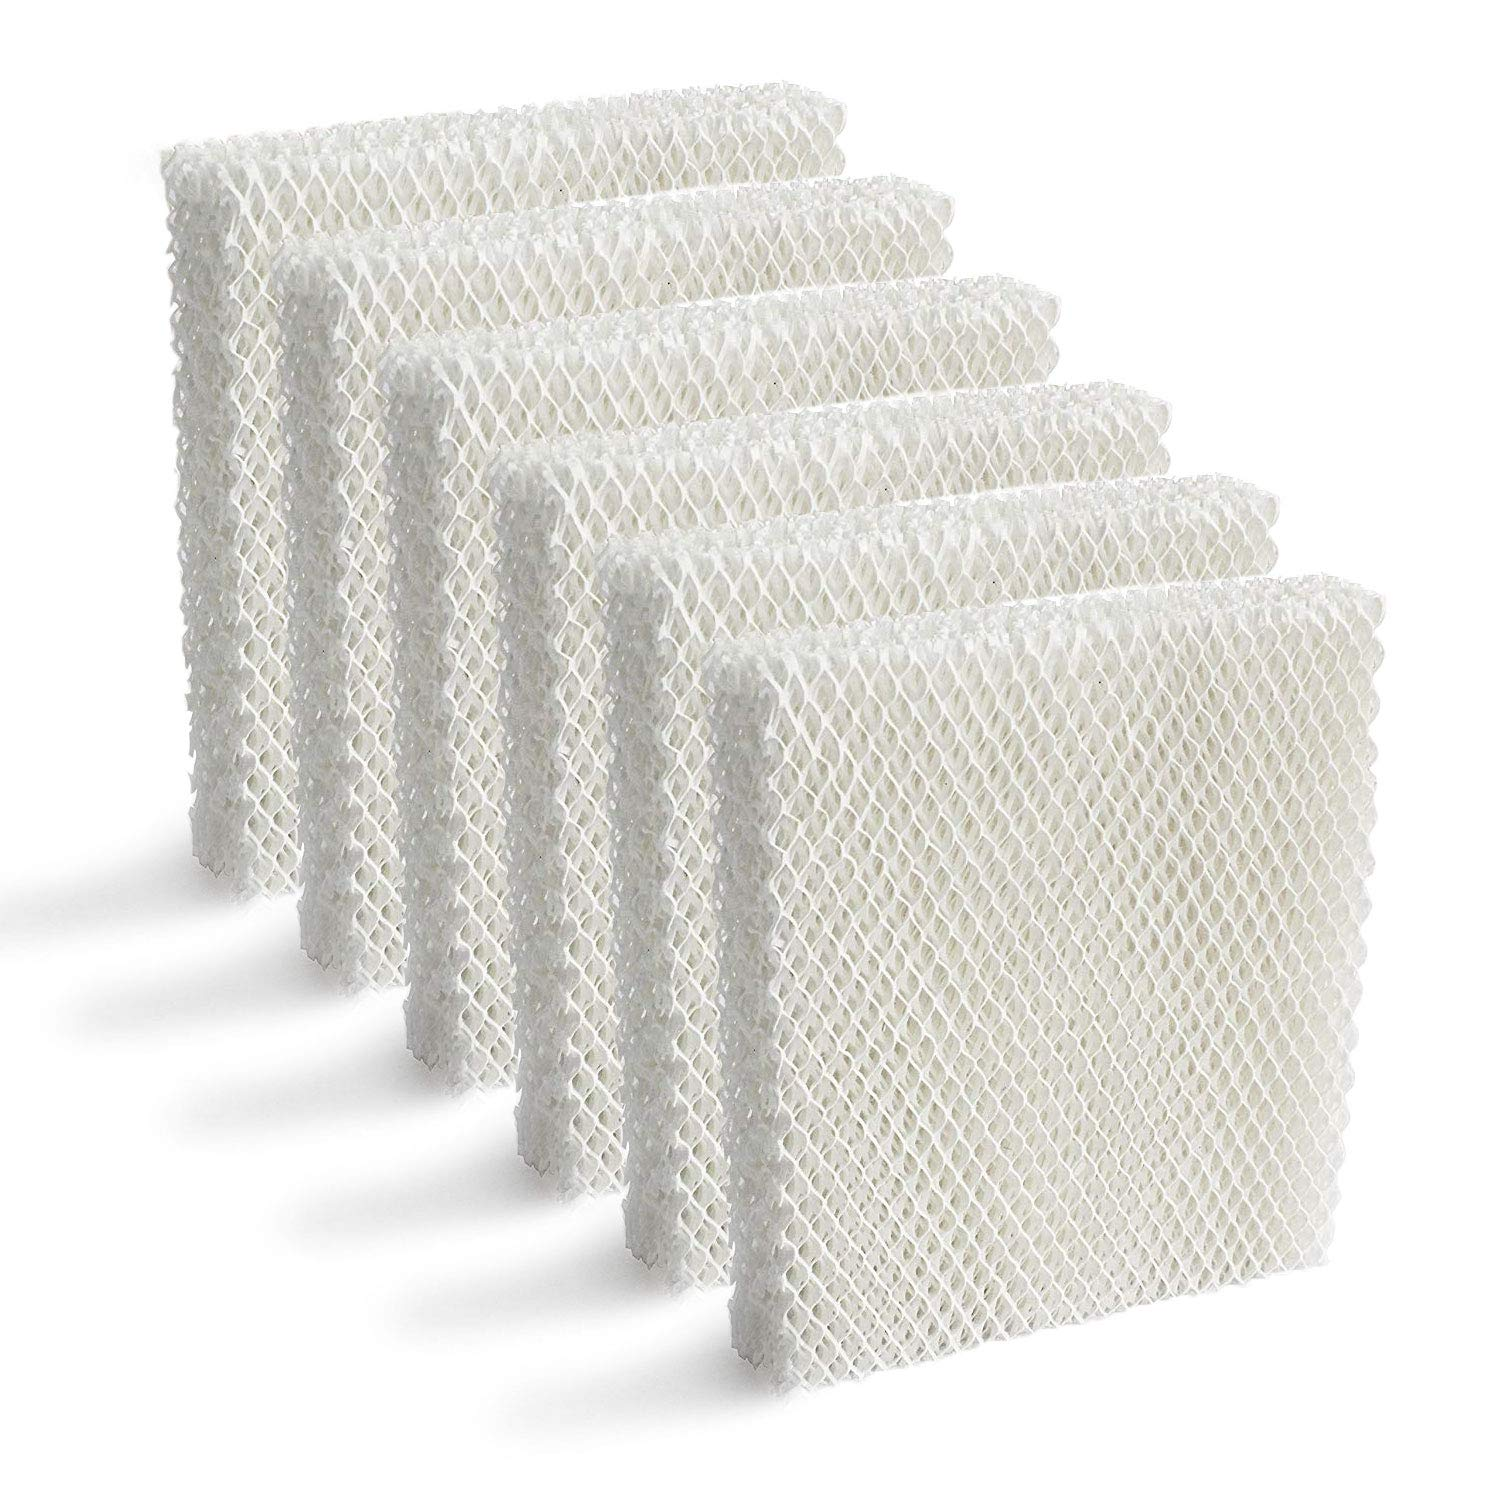 Lemige 6 Pack Humidifier Wicking HFT600 Filters T Compatible with Honeywell Tower Humidifier HEV615 HEV620, Compare to Part HFT600T HFT600PDQ by Lemige